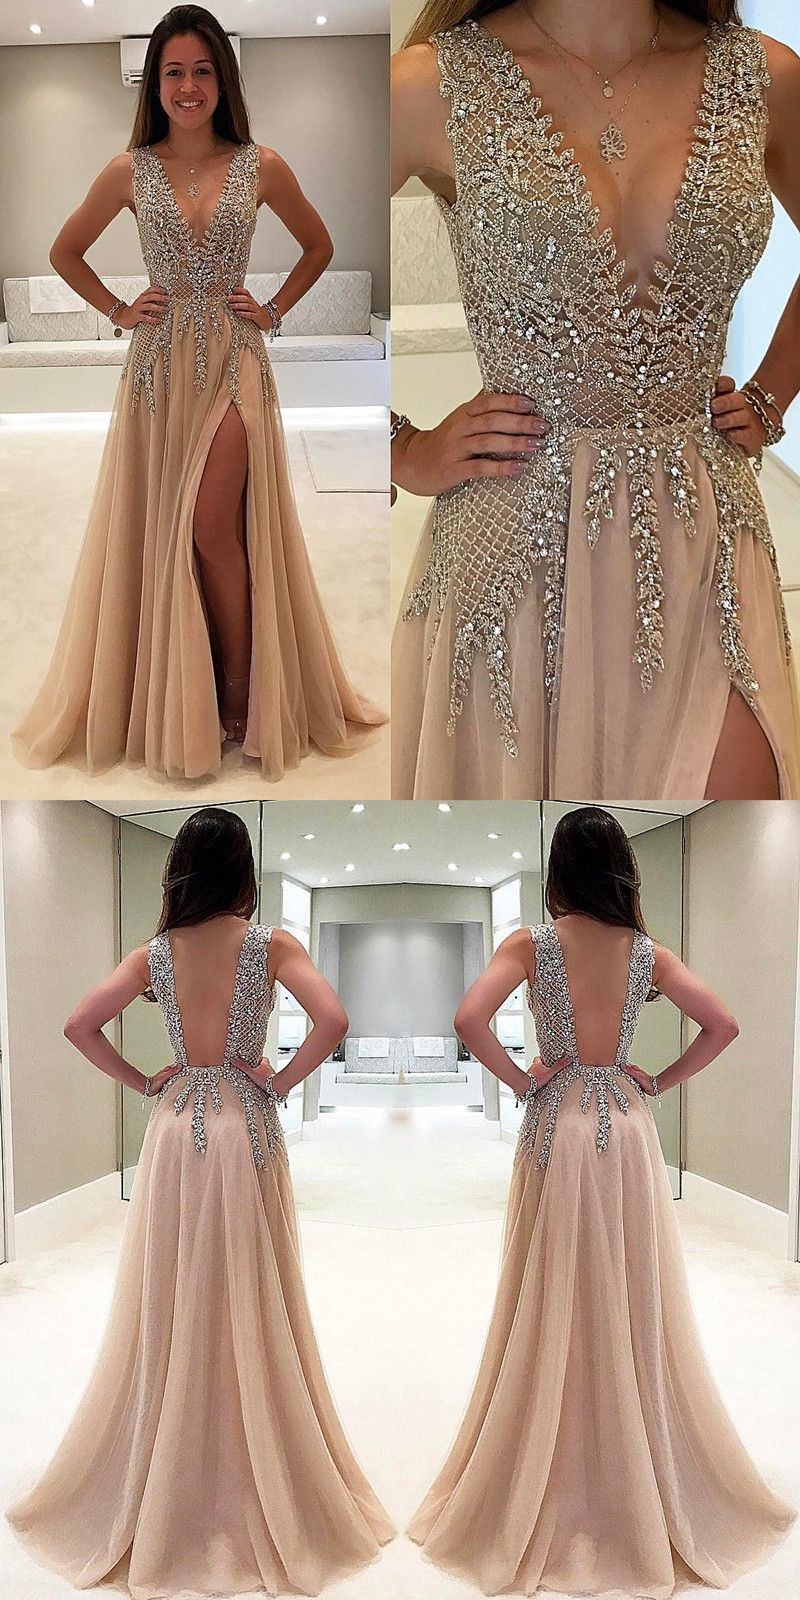 Aline deep vneck sweep train sleeveless pink tulle prom dress with